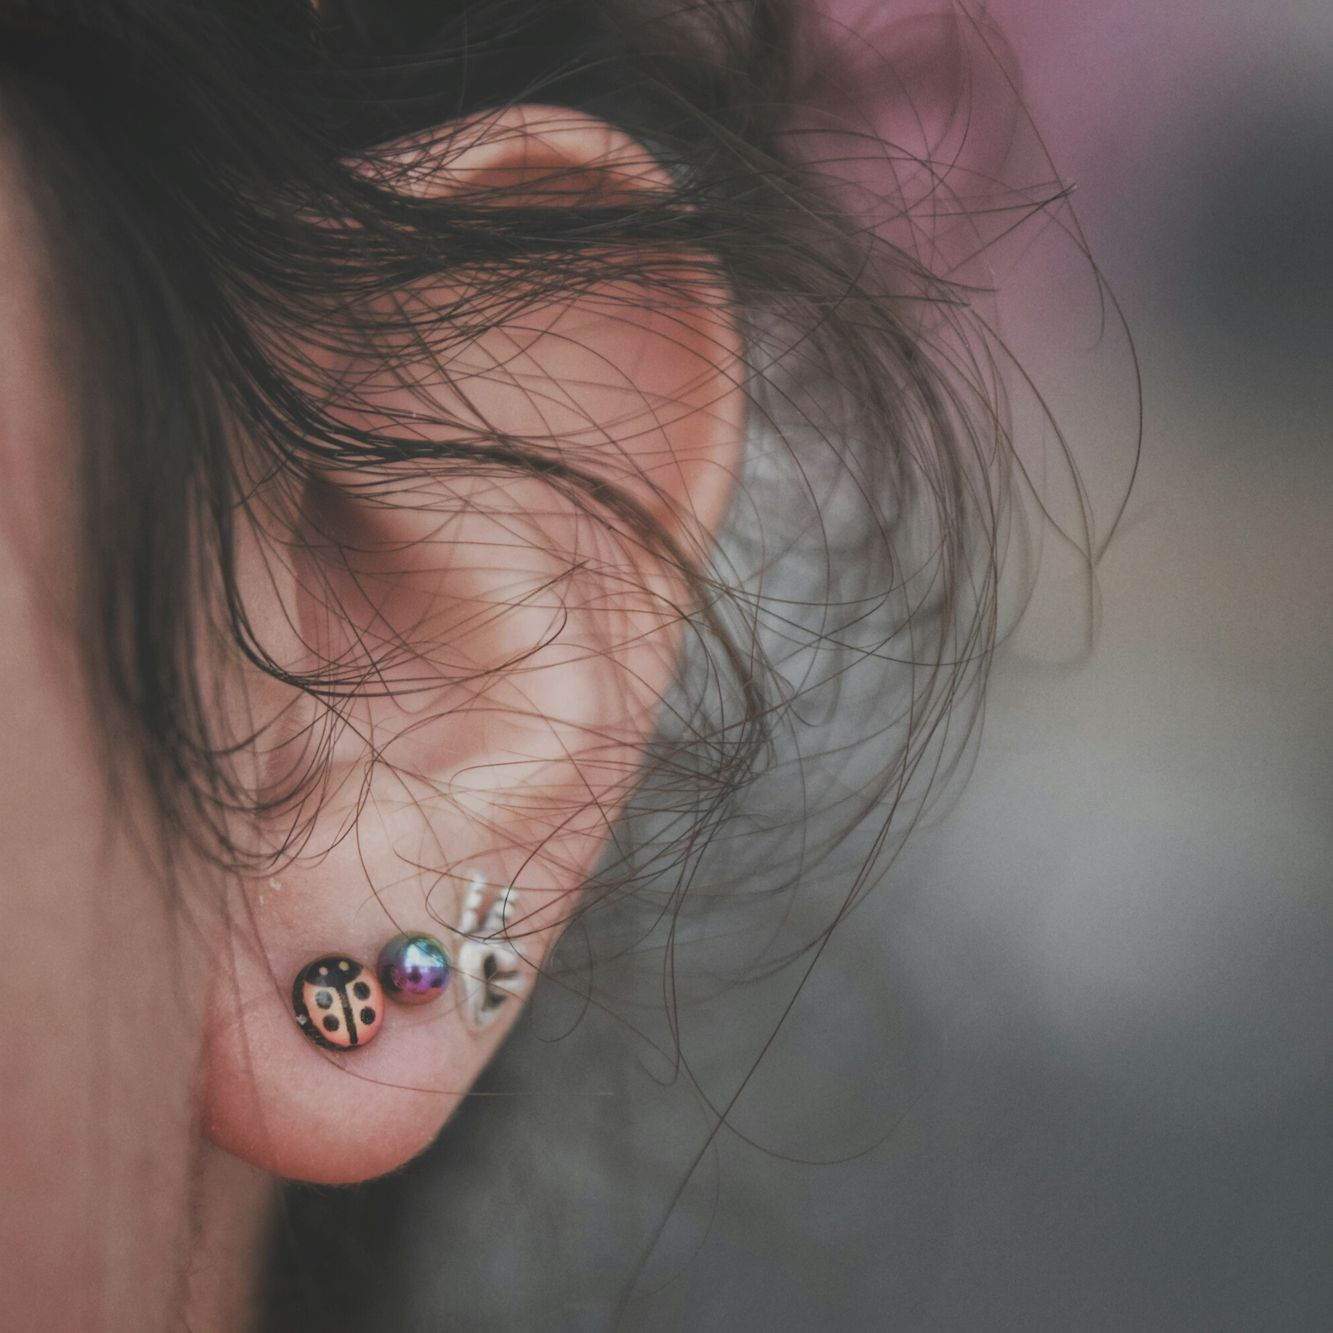 The Risks Of Having Your Ears Pierced